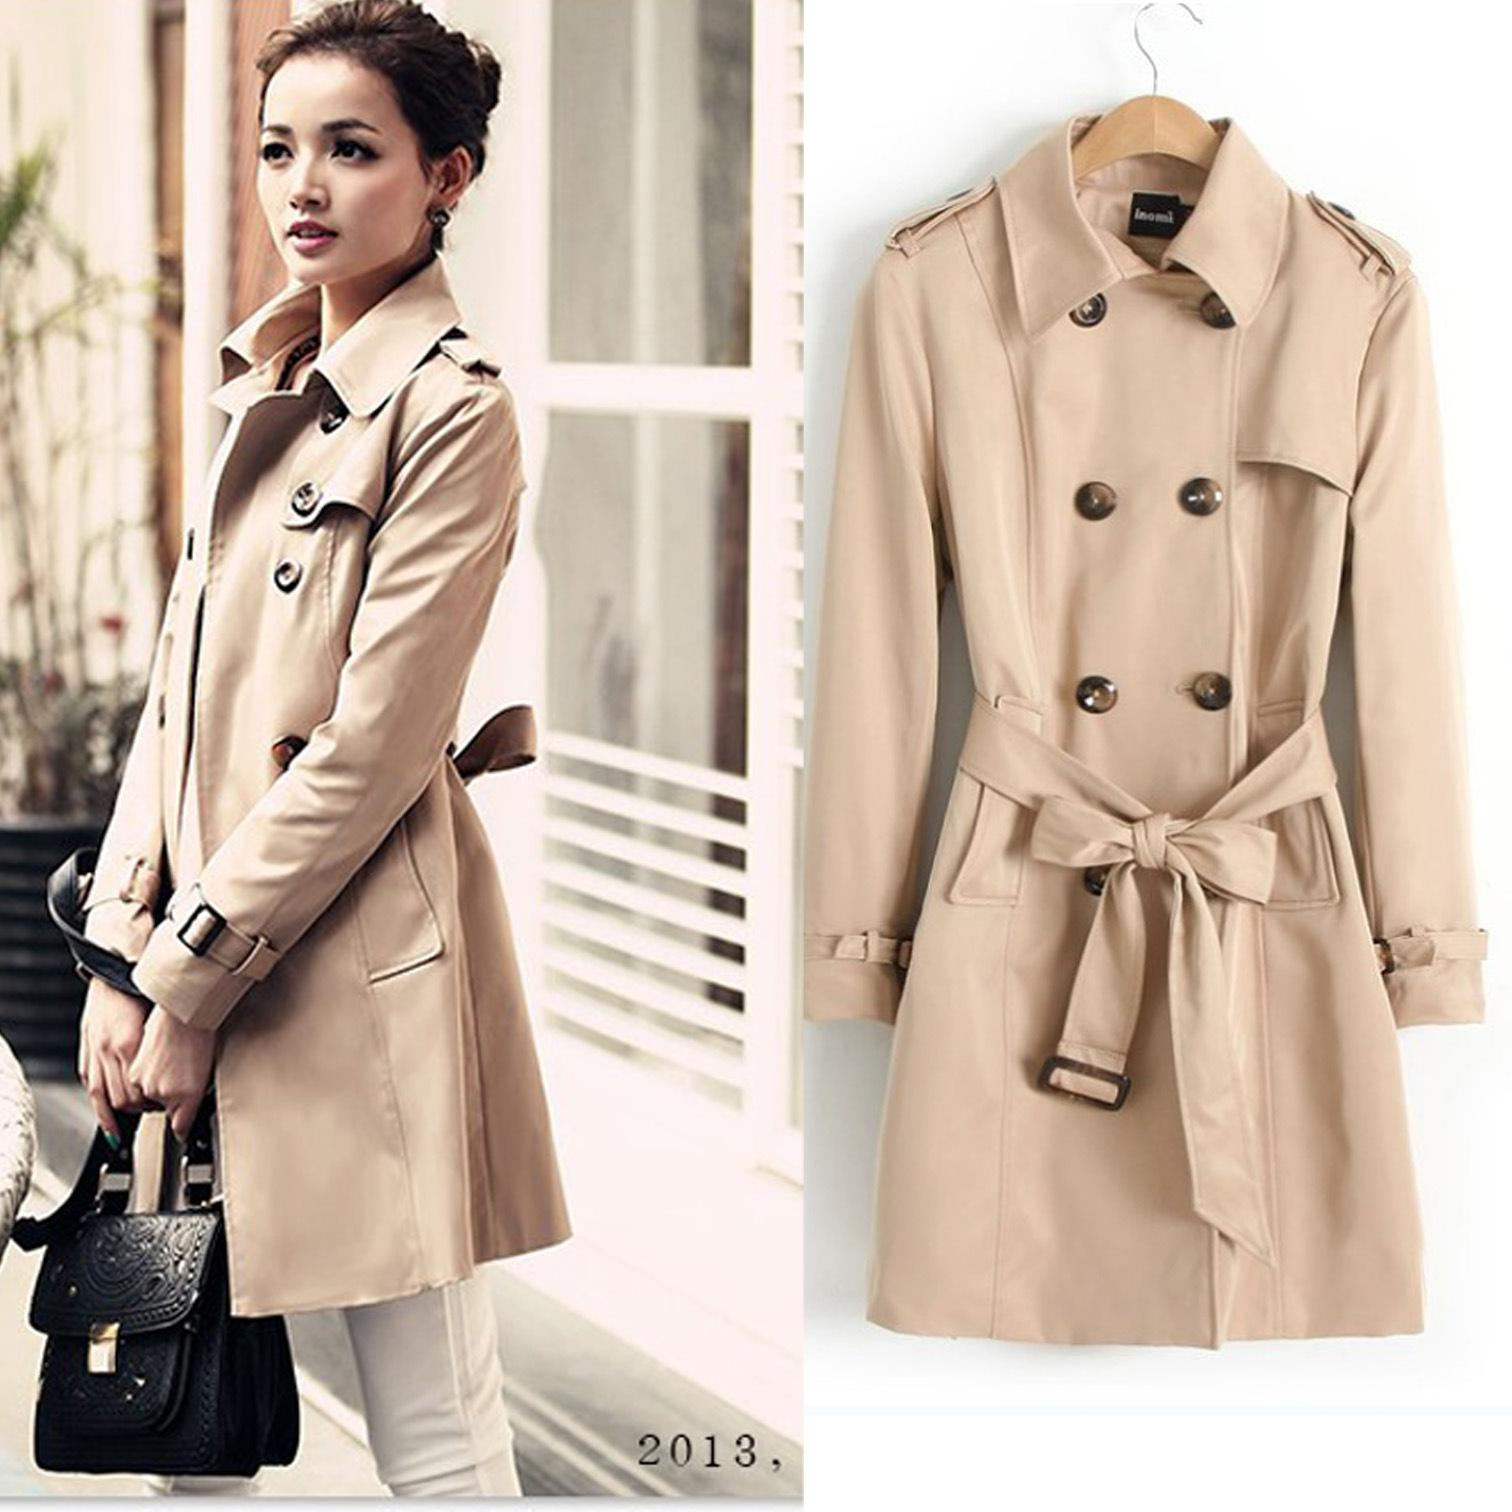 516b161a90d 2019 Trench Coat 2013 New Women's Autumn Korean Temperament Slim Epaulet  Wild Casual Fashion Drop Shipping HH From Qdliuye, $38.09 | DHgate.Com